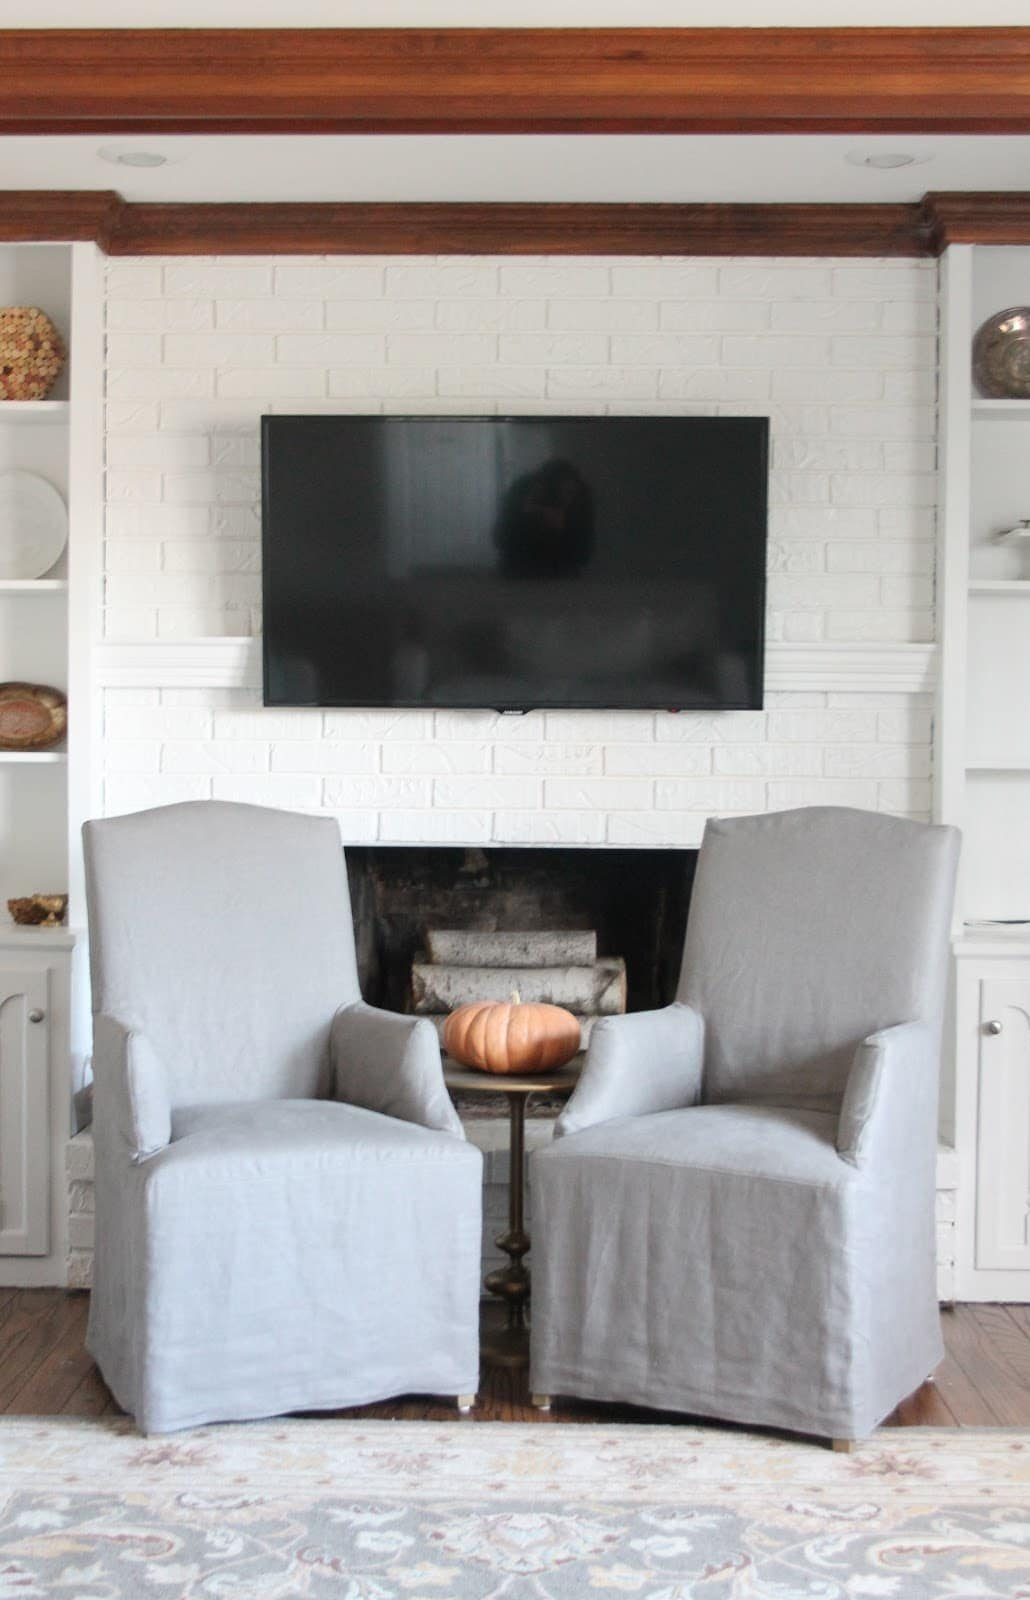 Hiding Cord On Wall Mount For Flat Screen Tv Diy Mantel Julie Wiring Easy Inexpensive To Conceal And Cable Cords Via Julieblanner